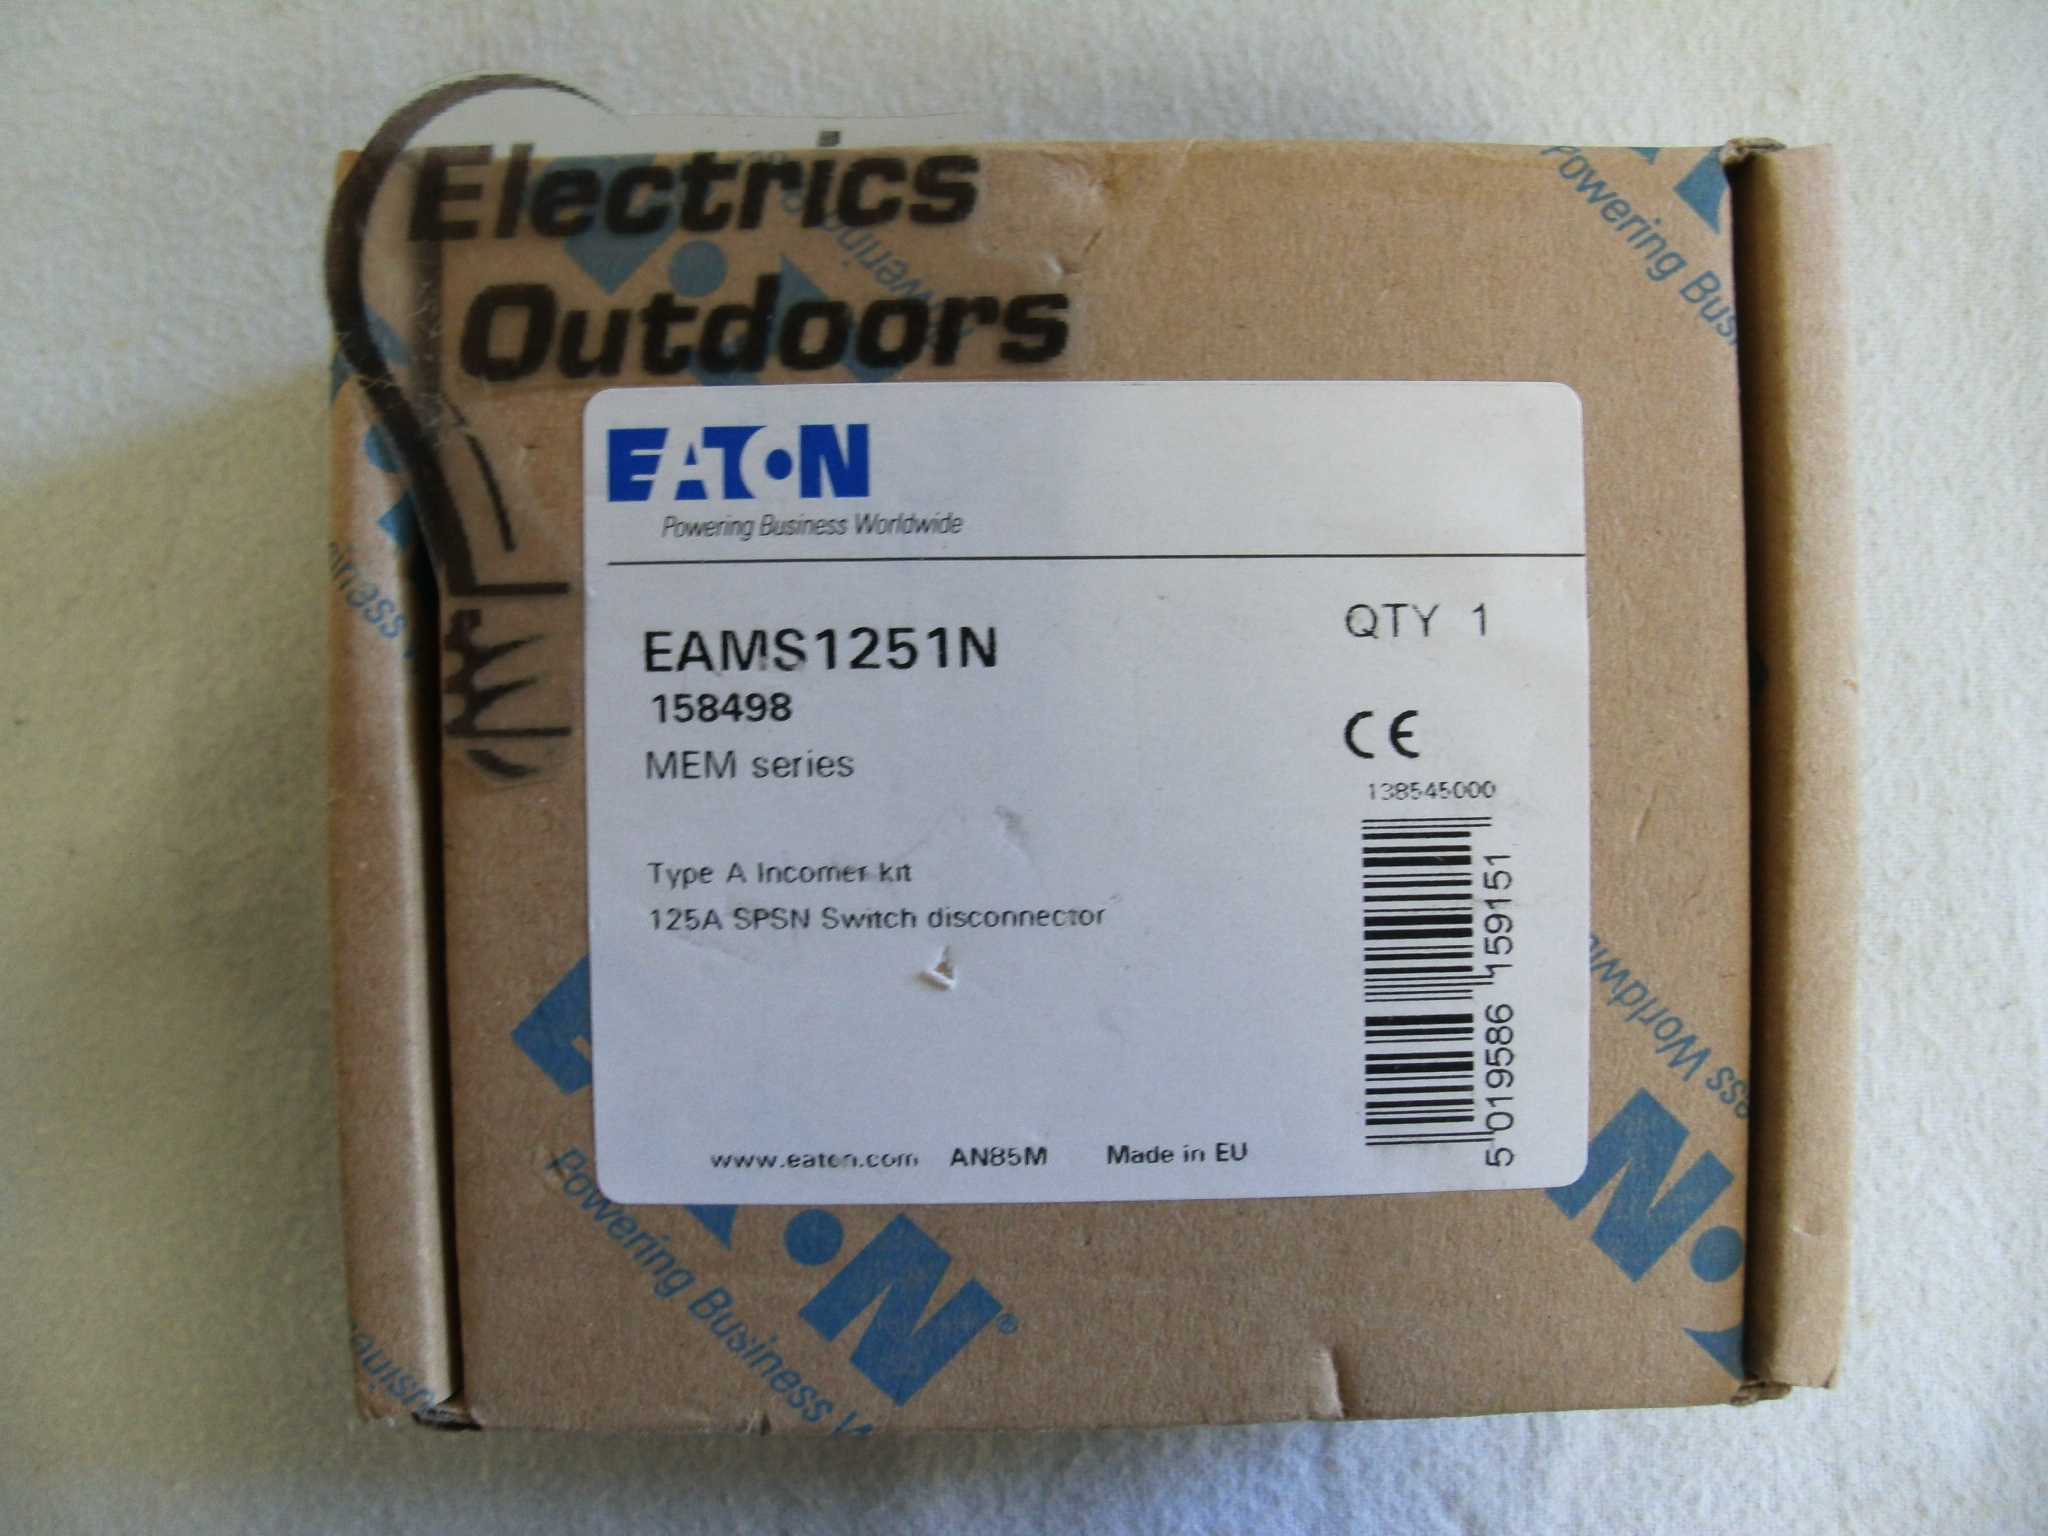 EATON 125 AMP MAIN SWITCH DISCONNECTOR SPSN 240V EMS1251N EAMS1251N